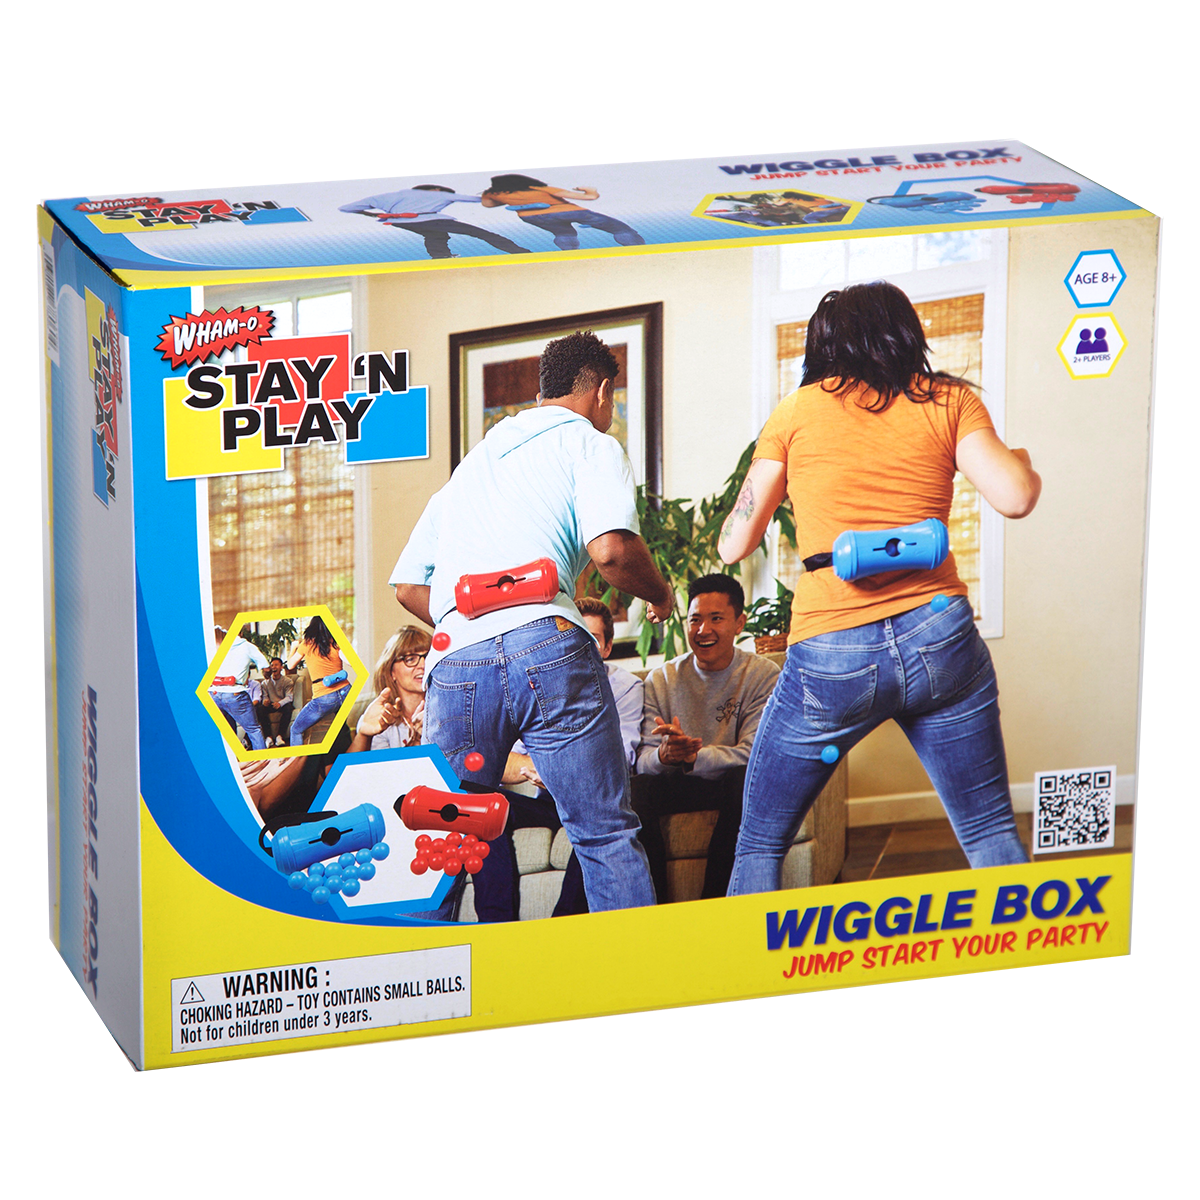 Wham-O Wiggle Box - Stay 'N Play on sale now and part of the Wiggle Box - Stay 'N Play of products.